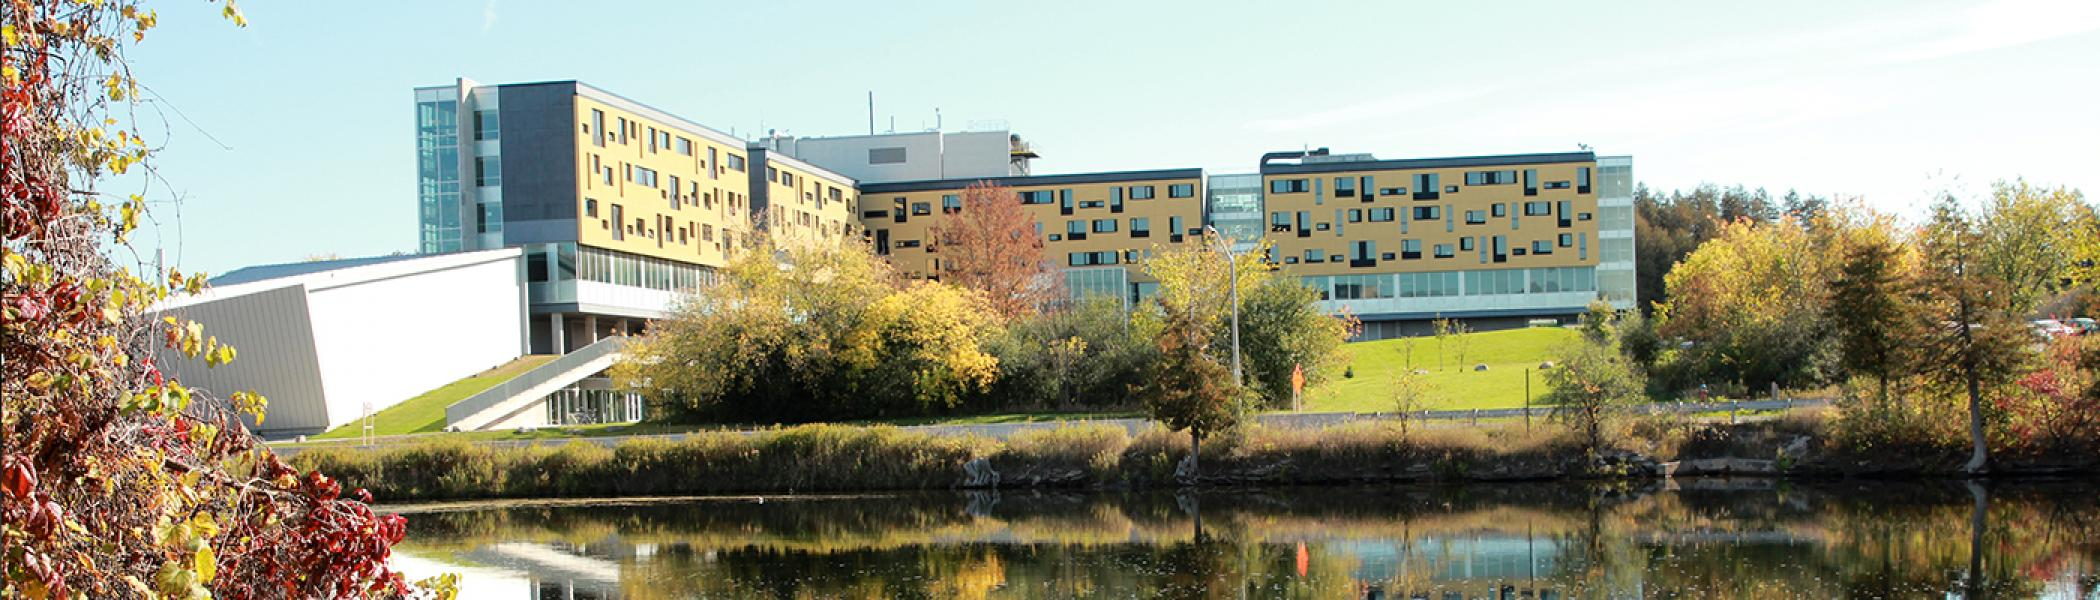 Gzowski College looking from across the river